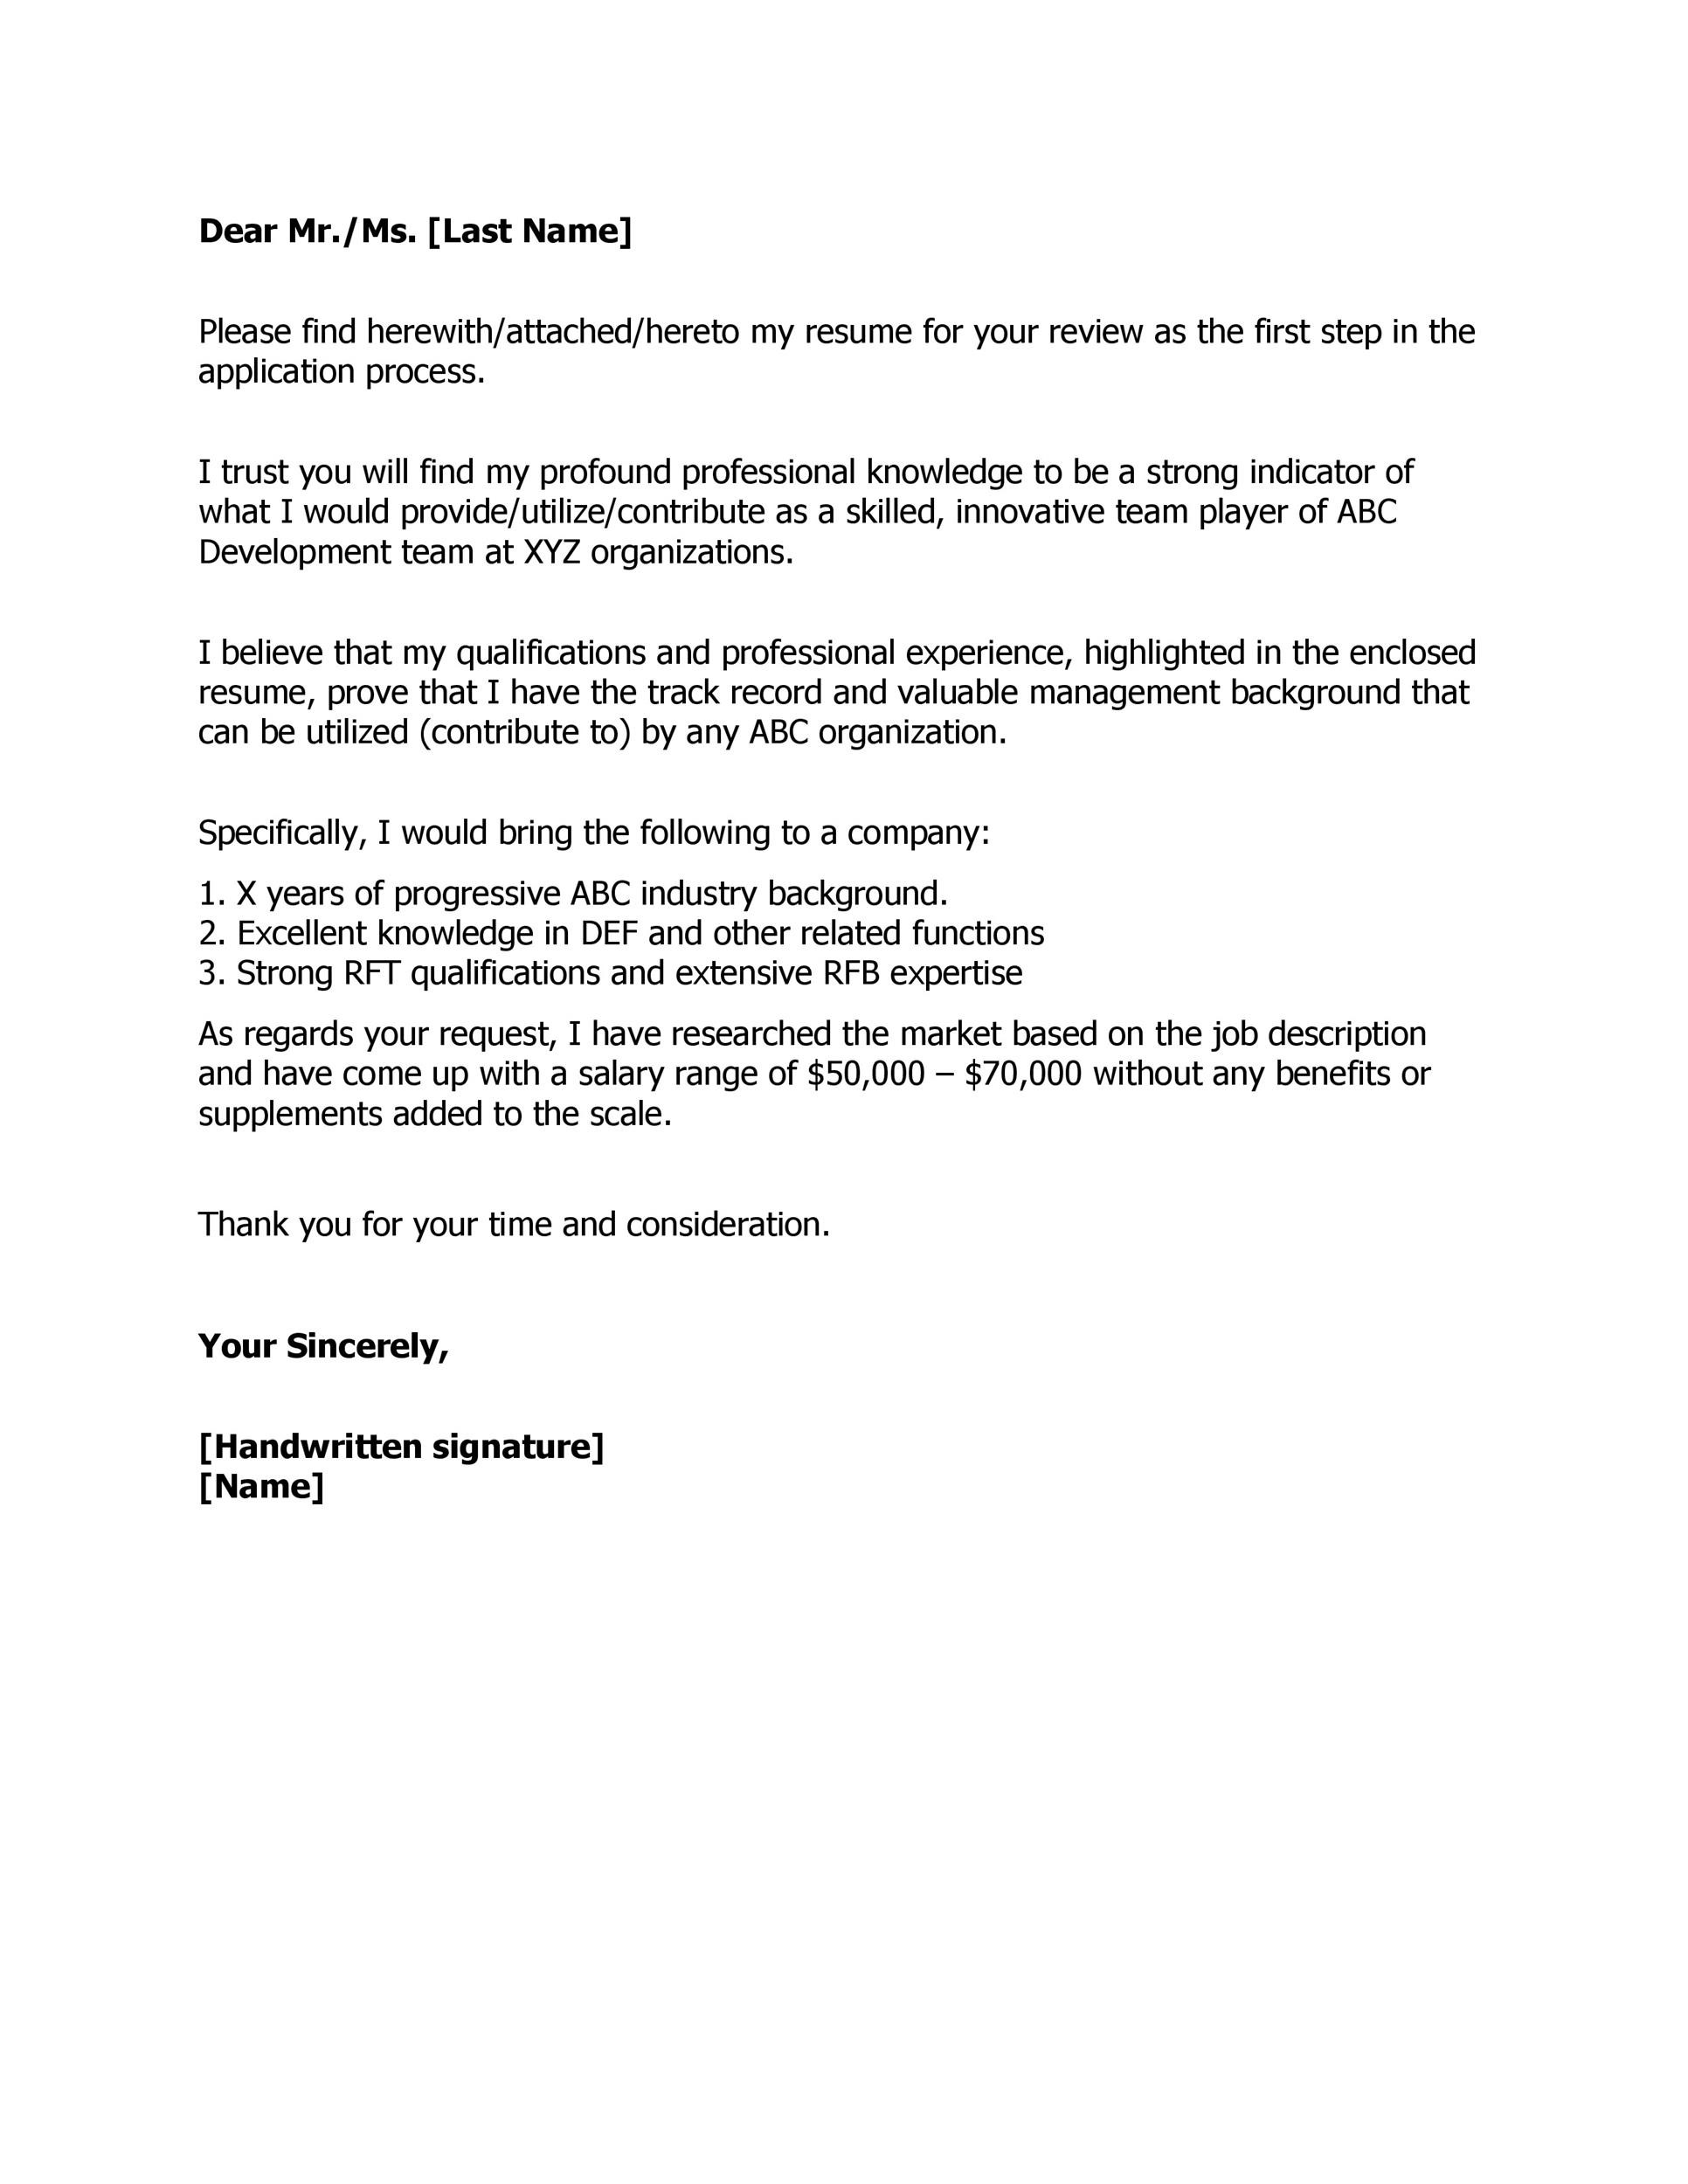 Free salary requirements cover letter 21